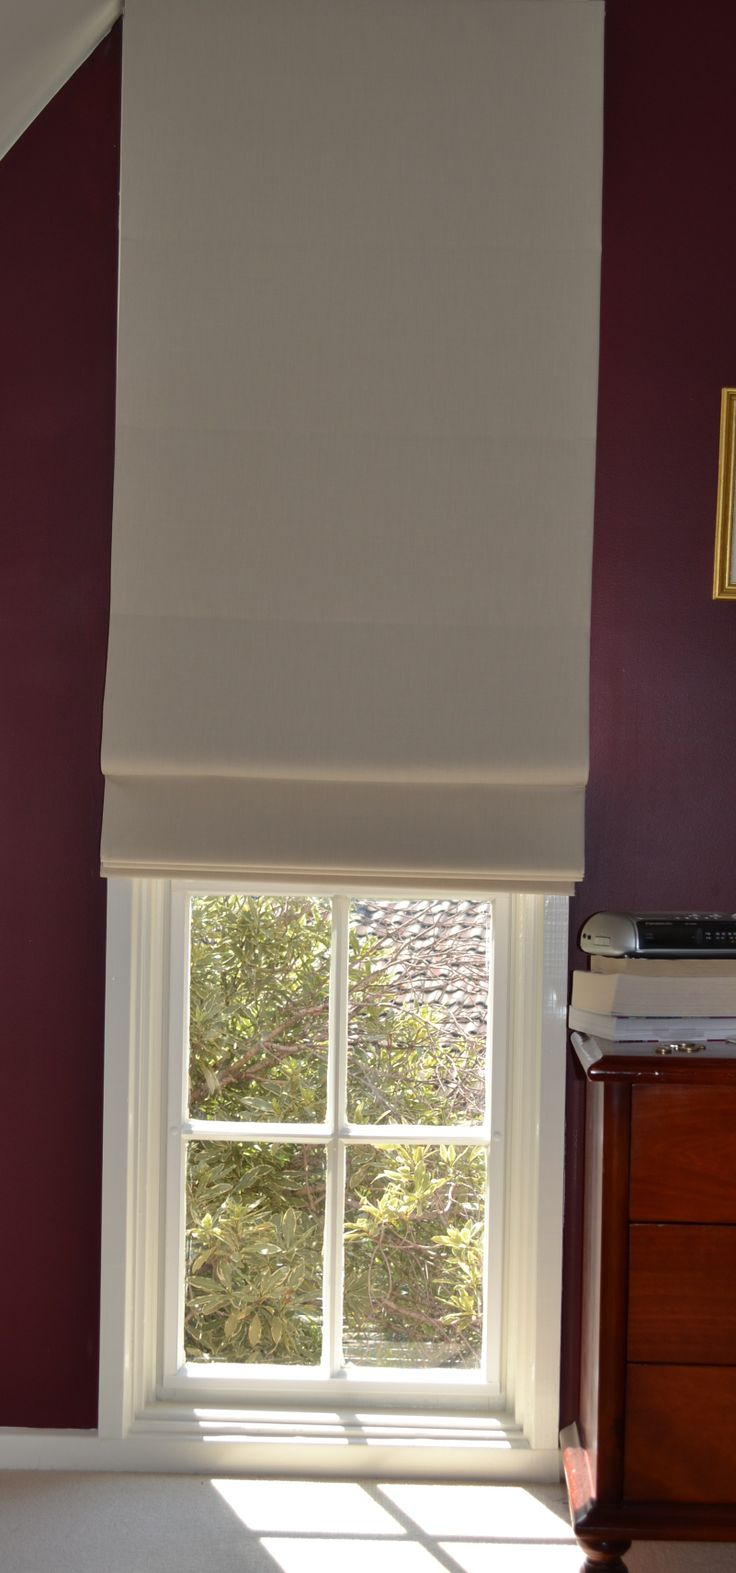 Roman blinds for small windows roman blinds pinterest for Pictures of roman shades on windows